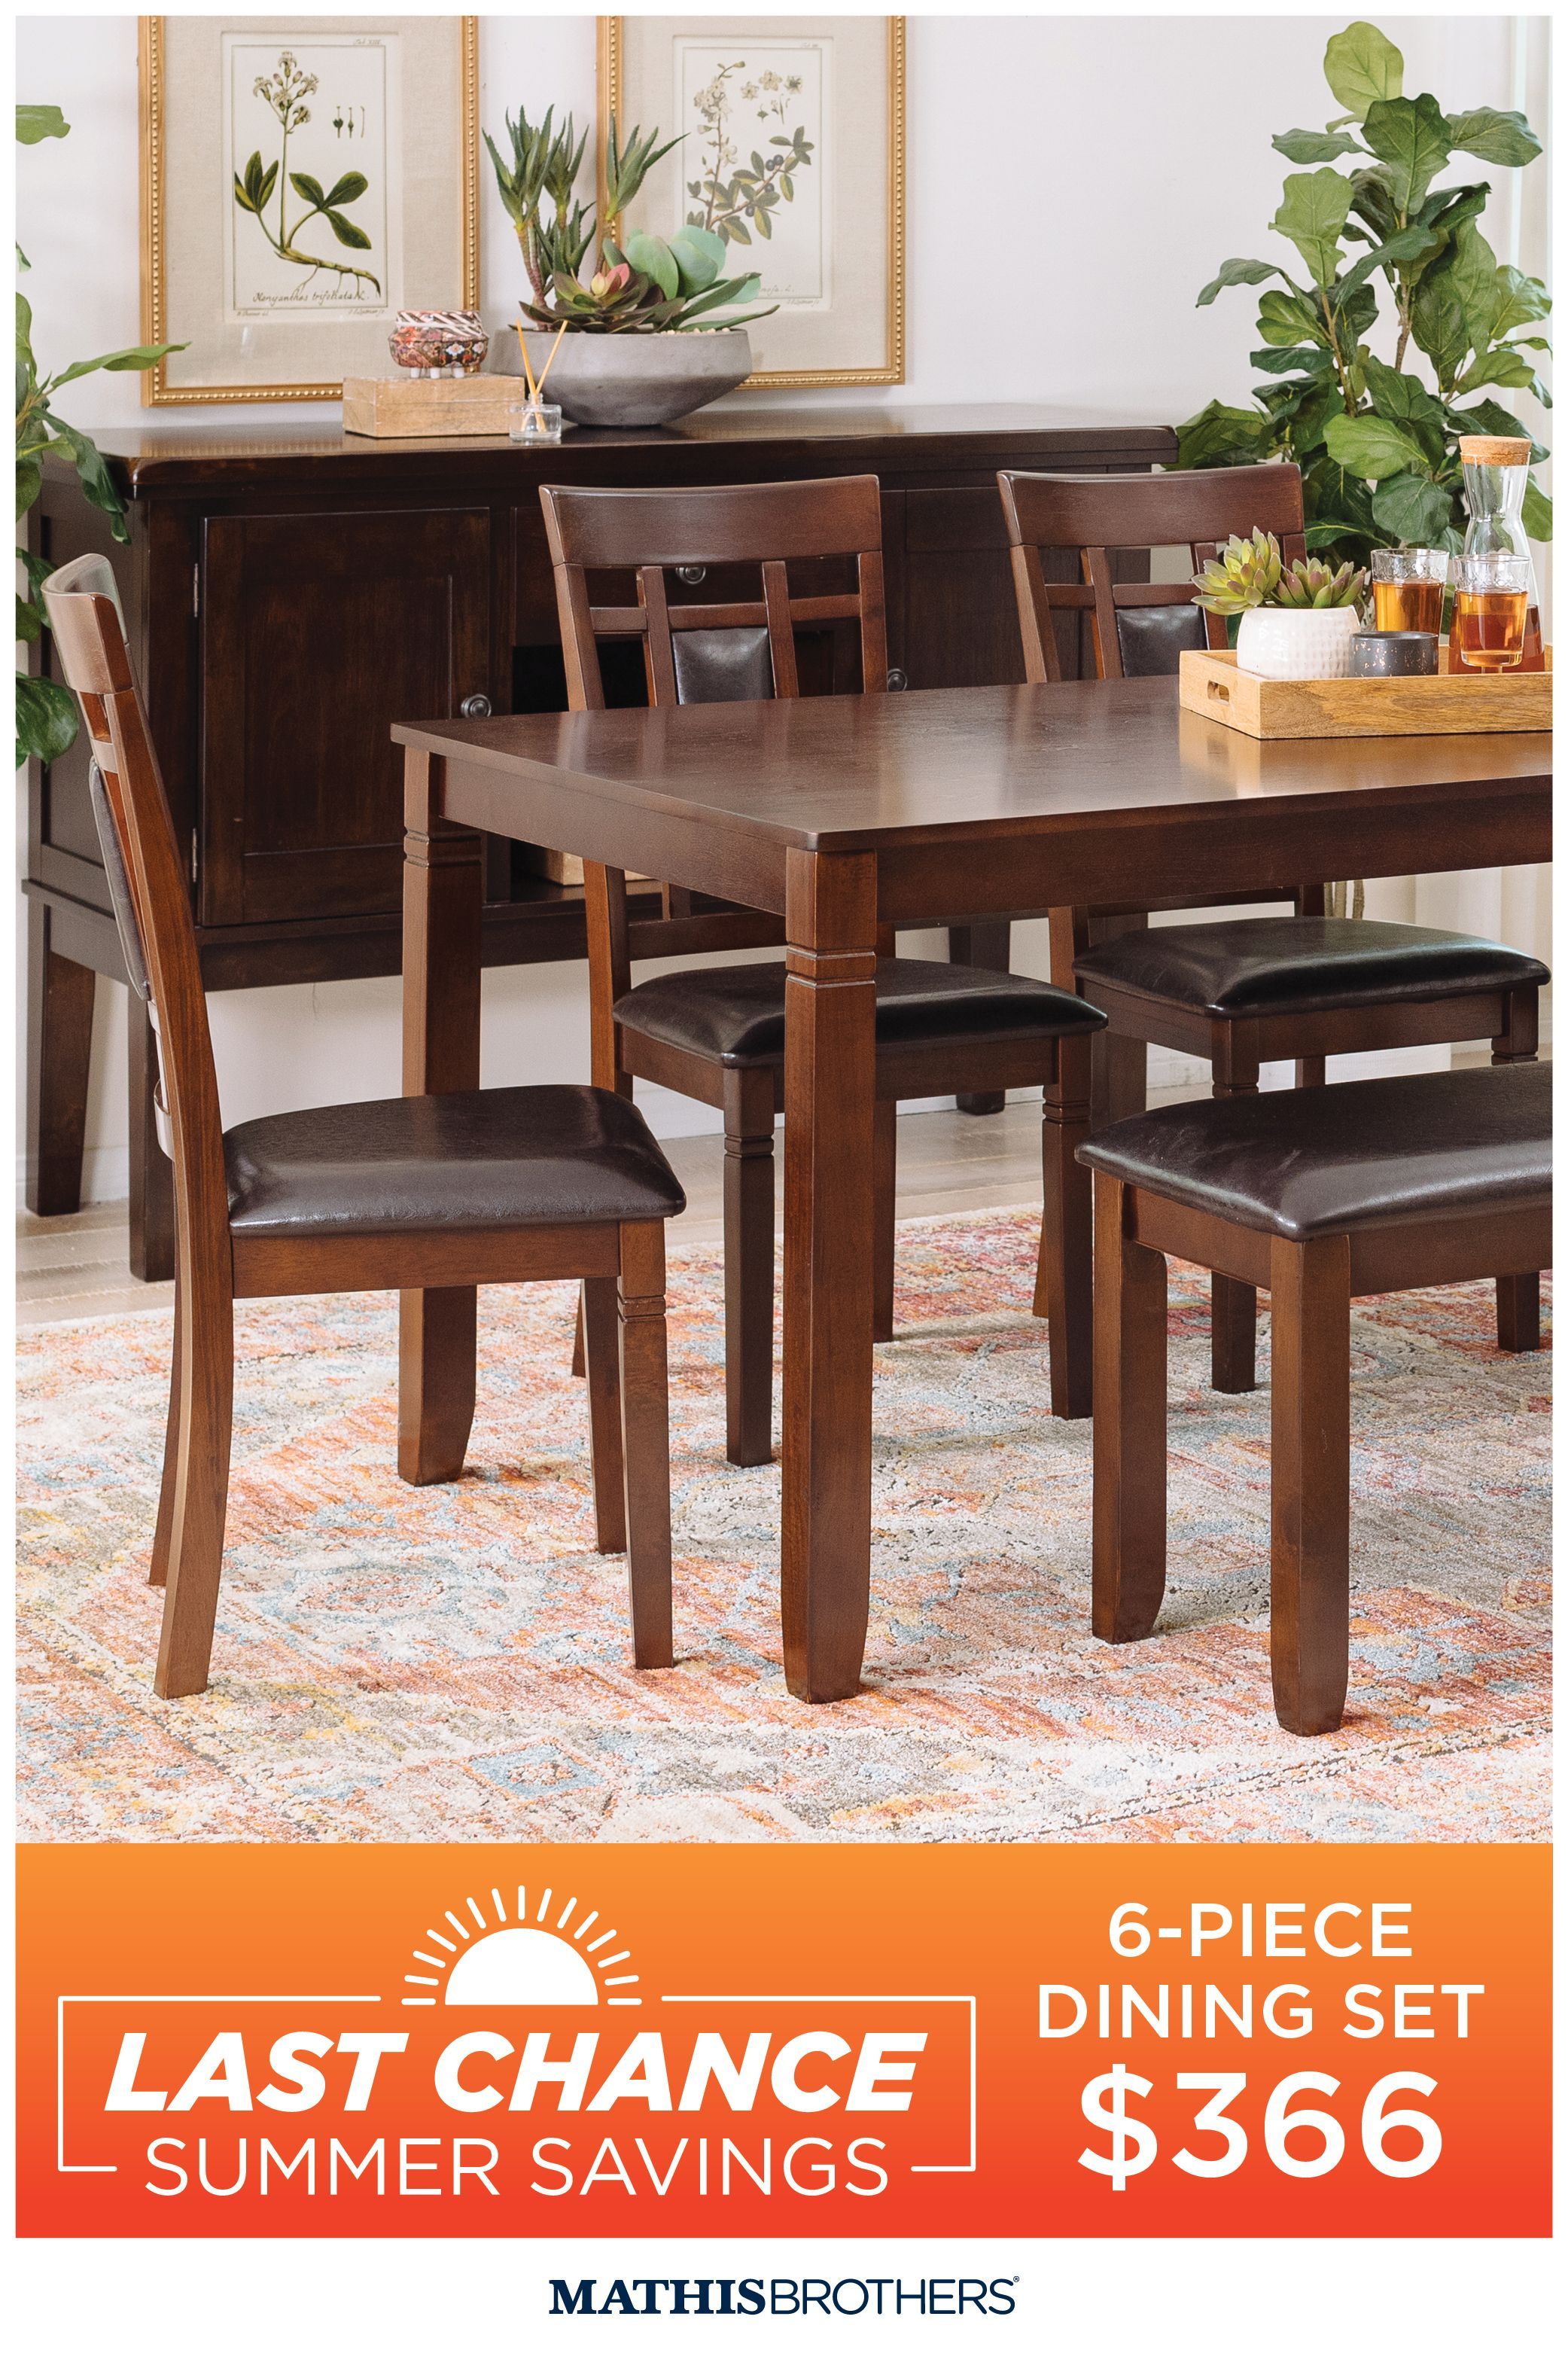 Navy And Gold Dining Room, Dining Sets For New Season Dining Room Furnishings Dining Room Sets Dining